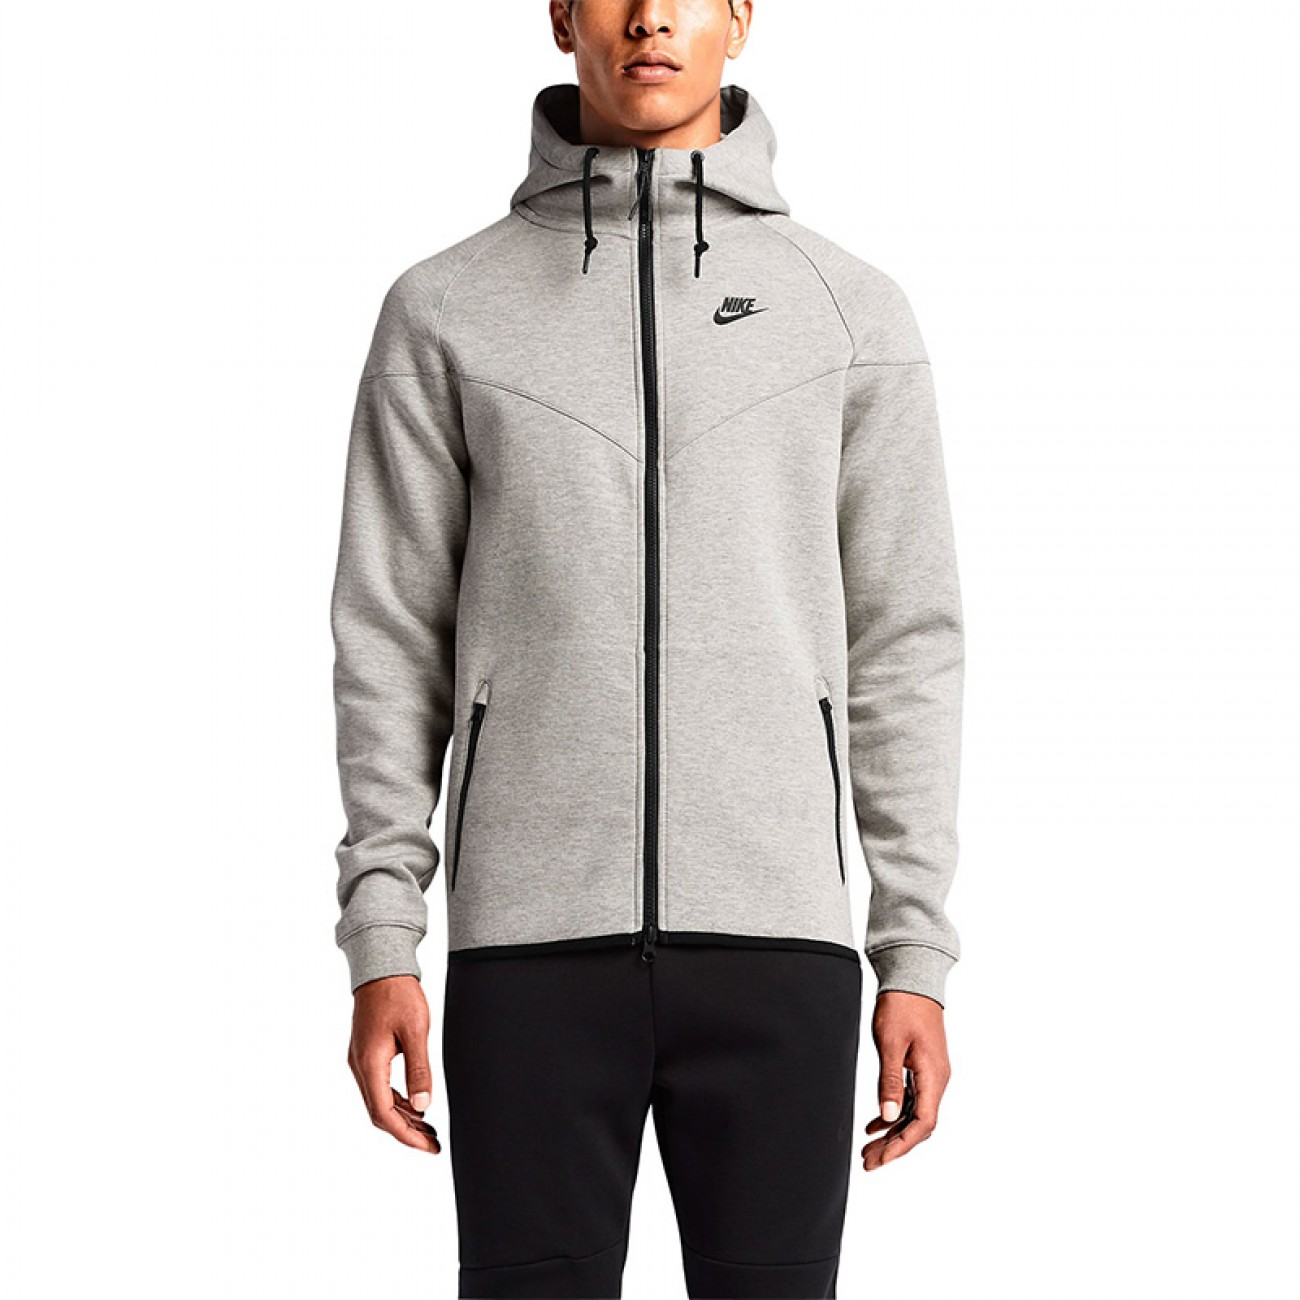 745e77e8d53e Nike Tech Fleece Windrunner Jacket Size s - Light Jackets for Sale ...